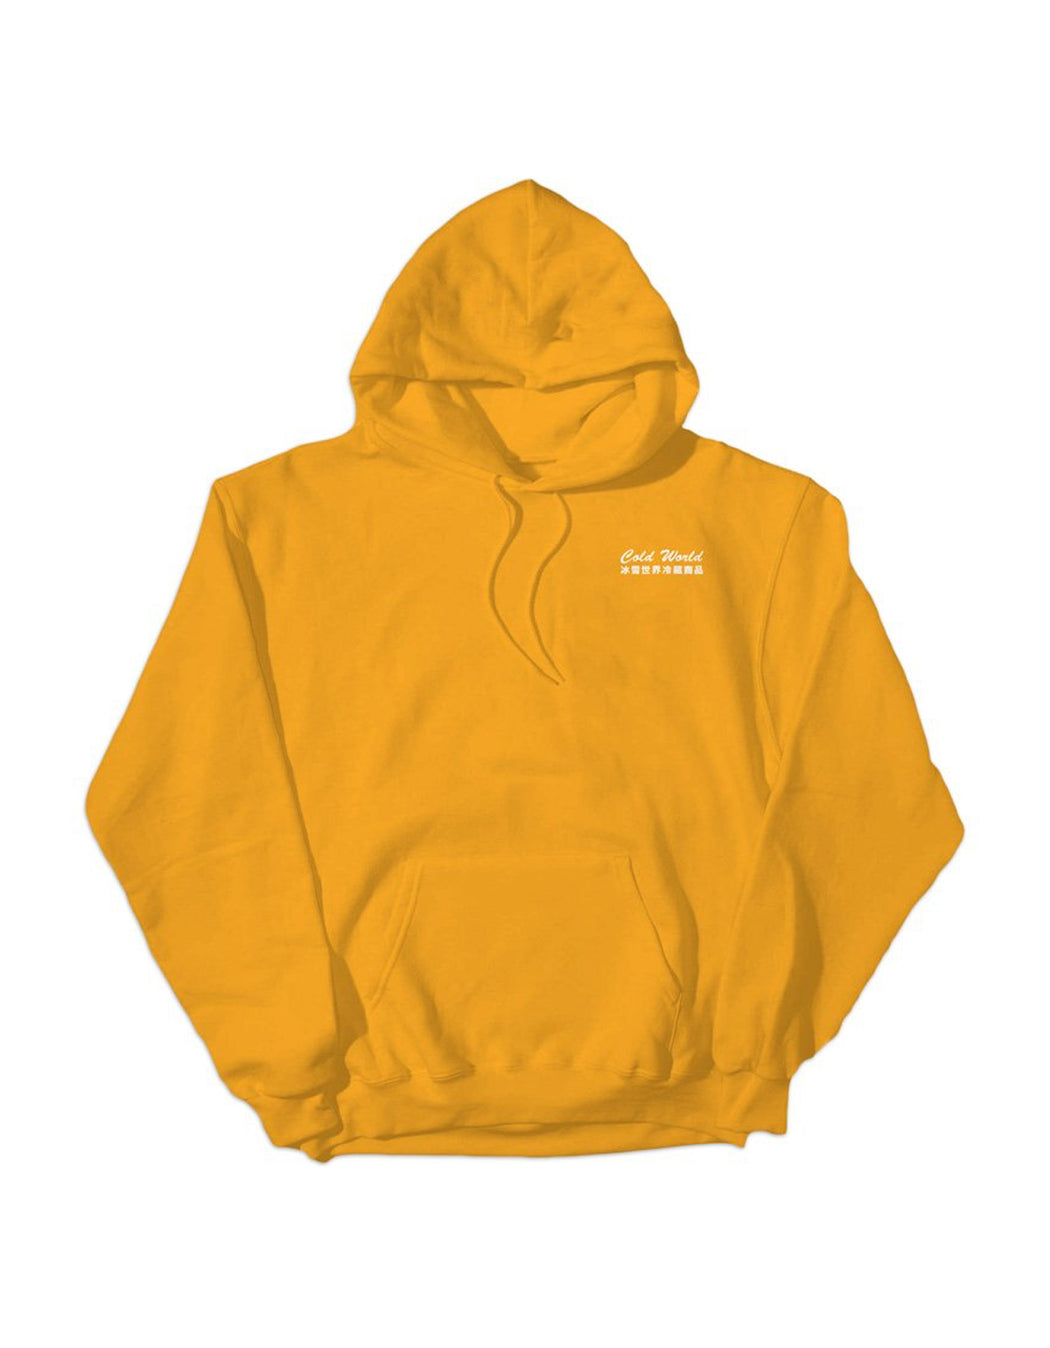 Cold World Cold Bunny Trash Bag Hoody Gold